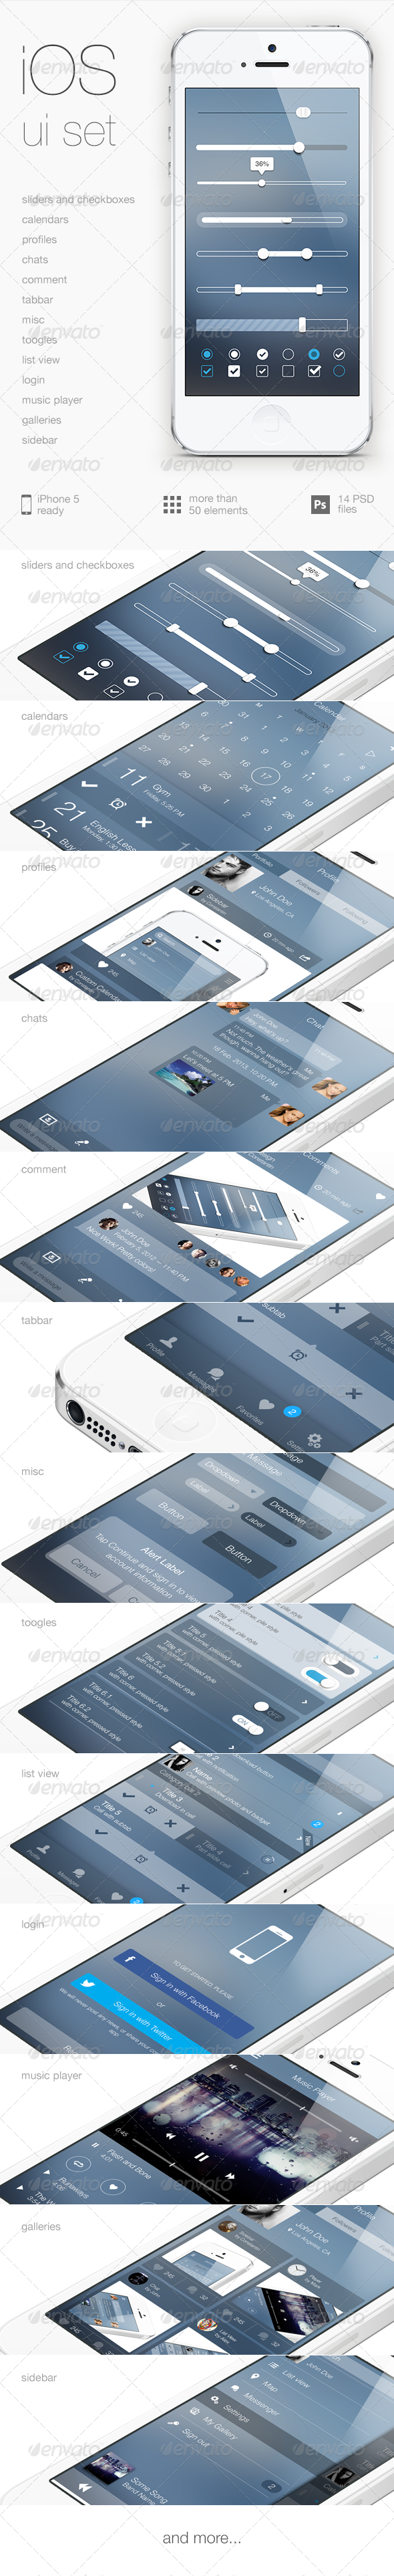 iOS Flat UI Set Vol. 3 - User Interfaces Web Elements